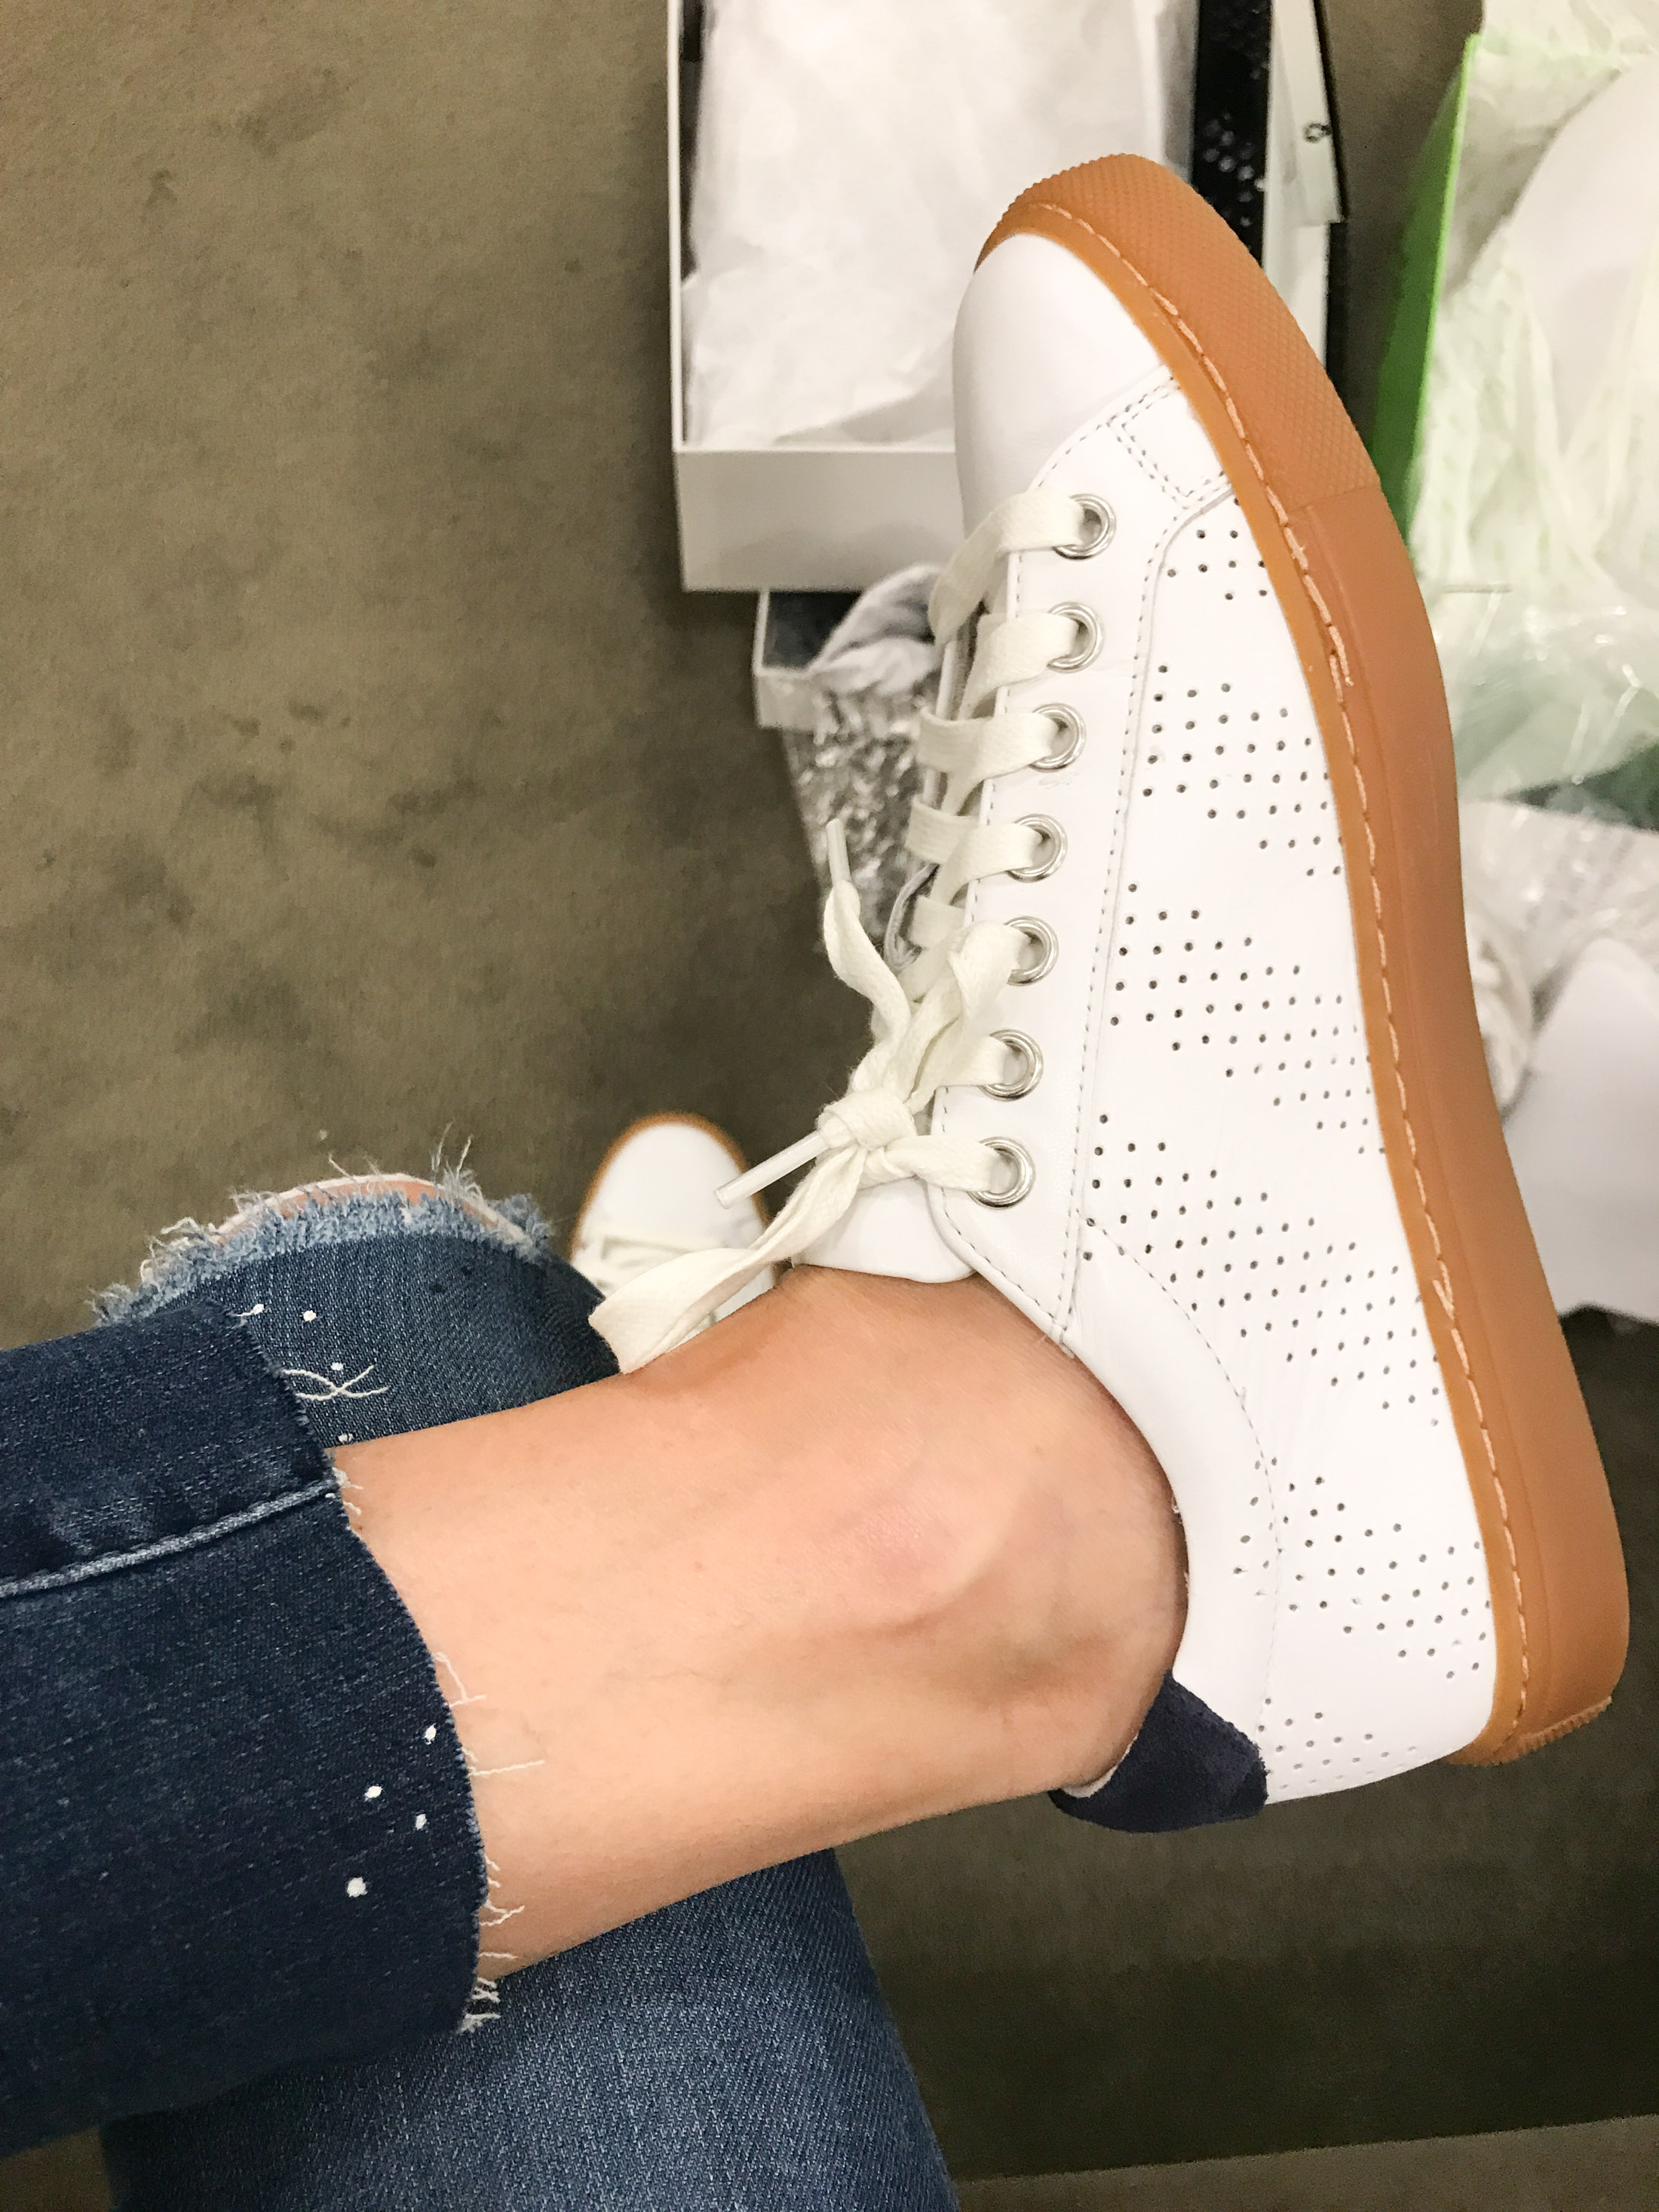 9c2c3032992 ... pairs of white sneaks (including this gorg pair from The Greats) I  would ve snapped these up. They have such a cool